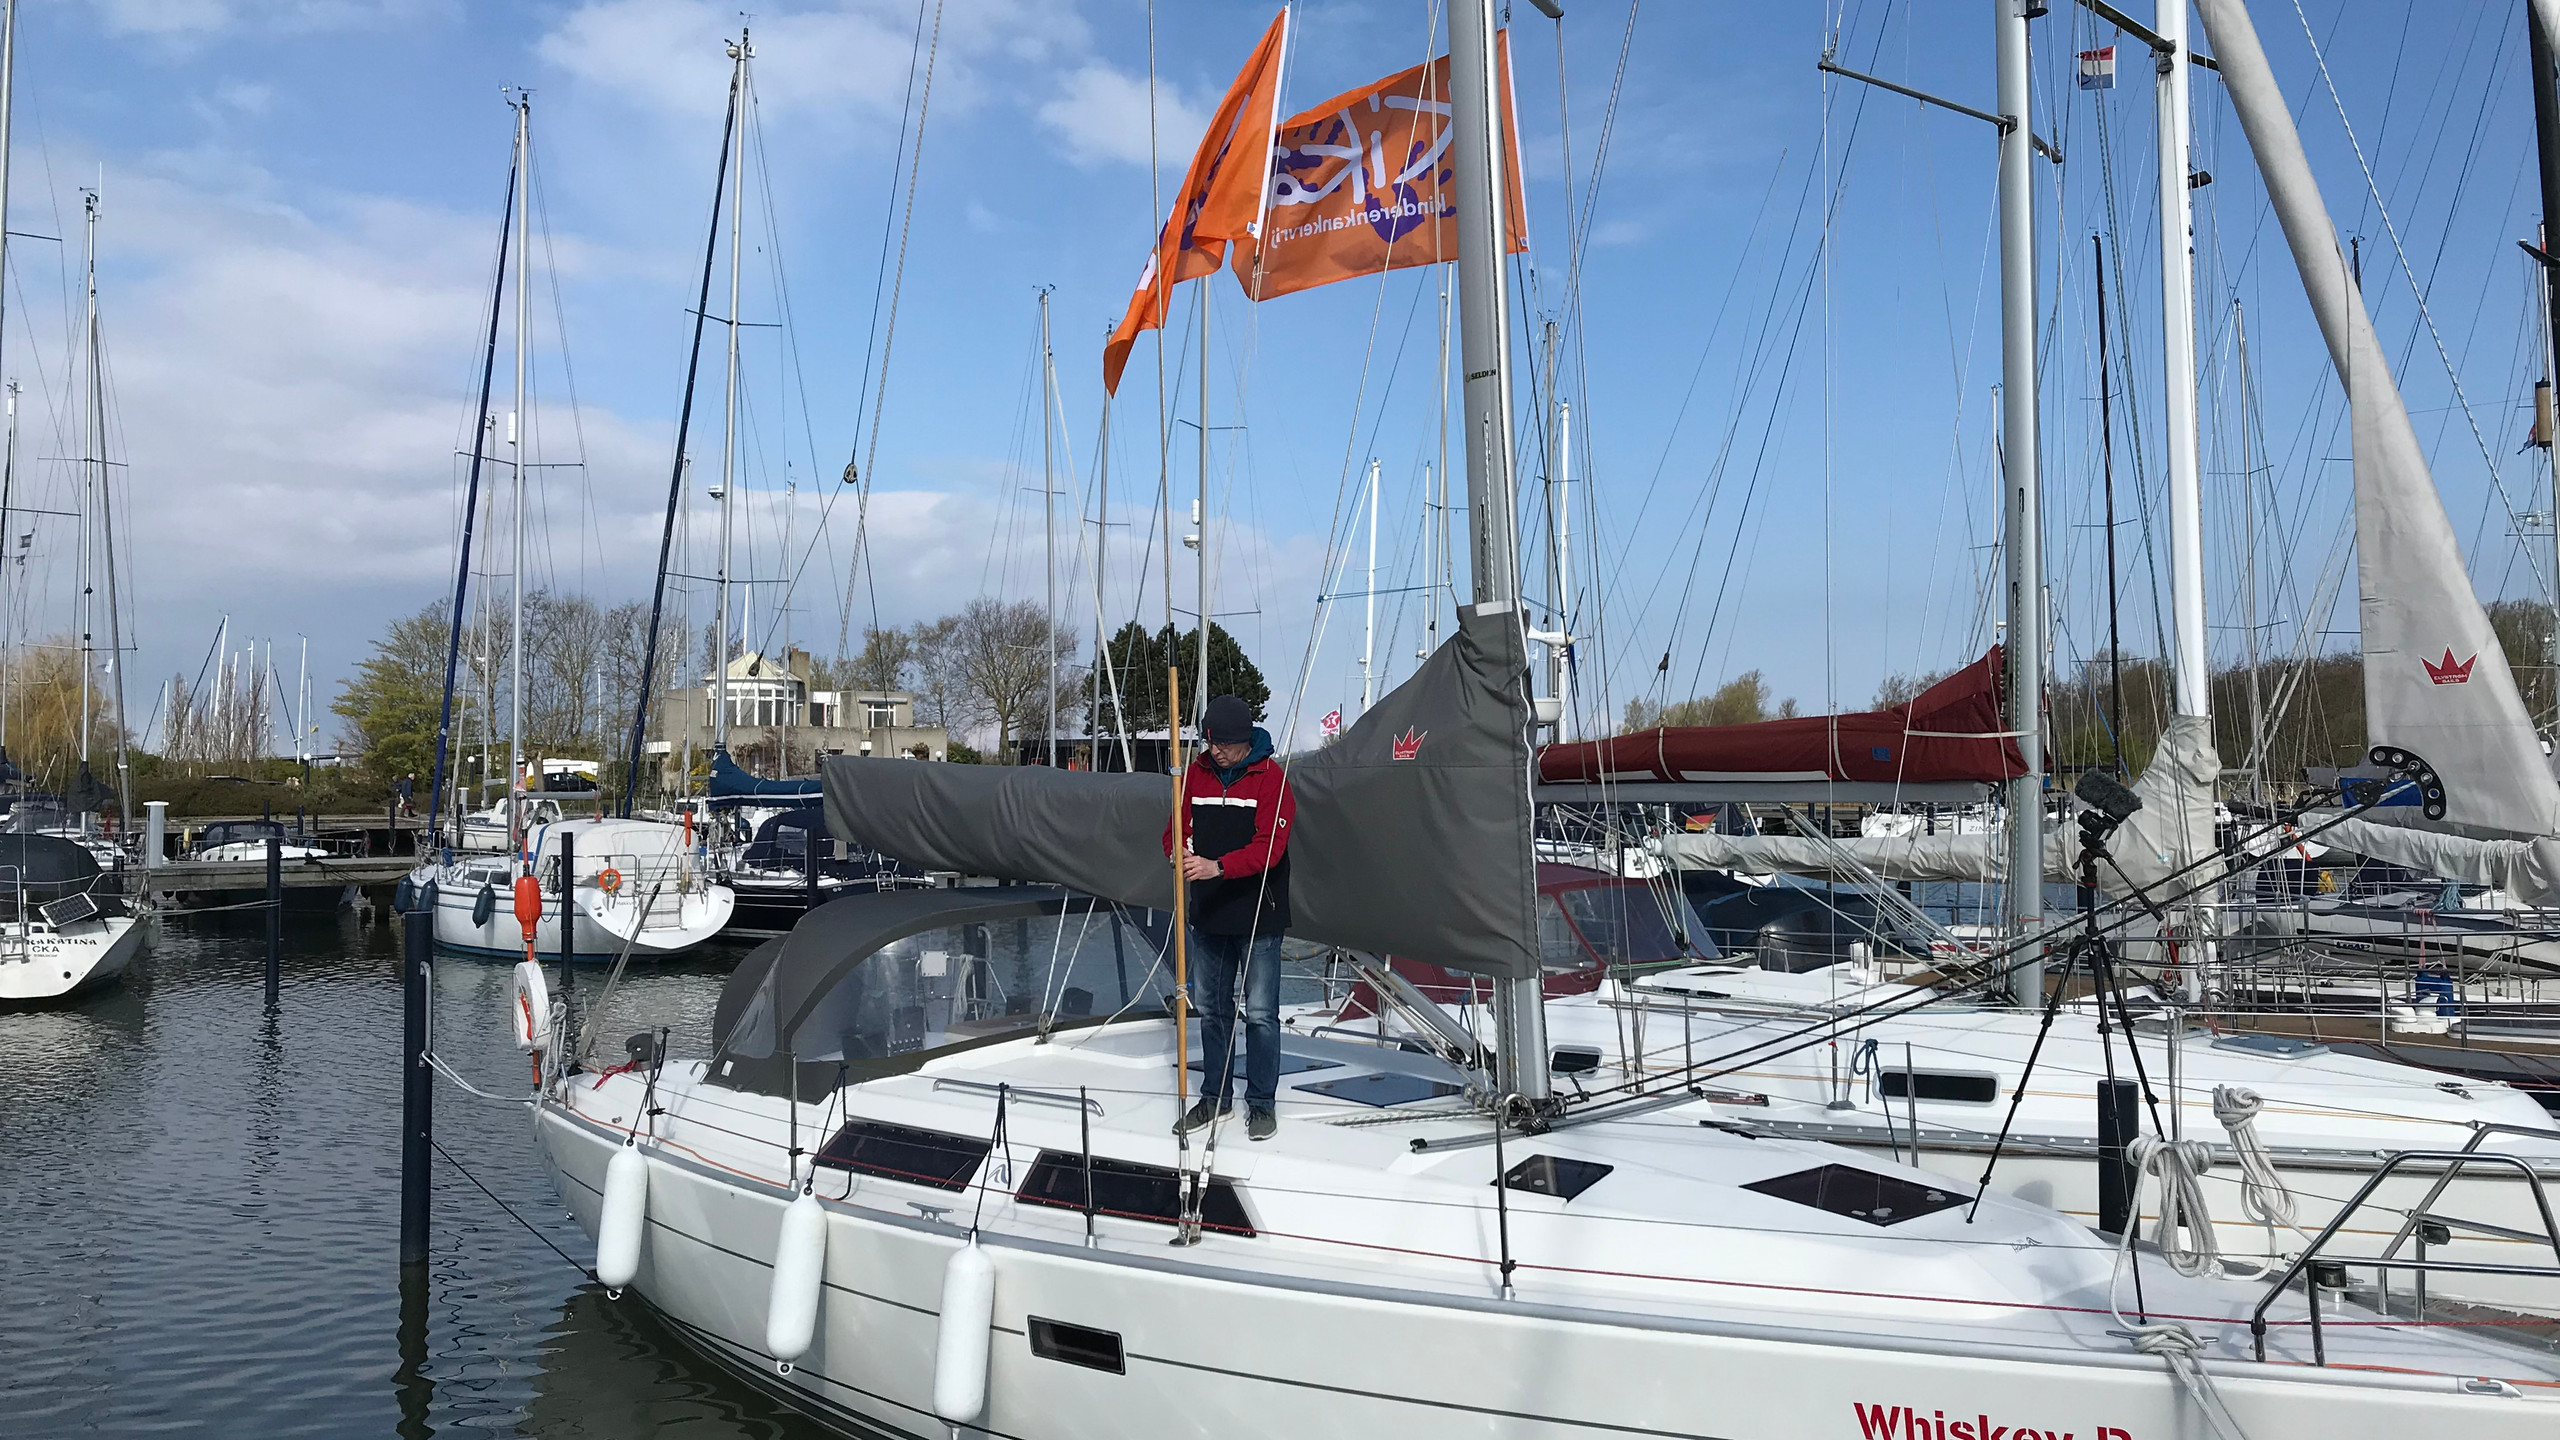 Adjusting the height of the KiKa flags